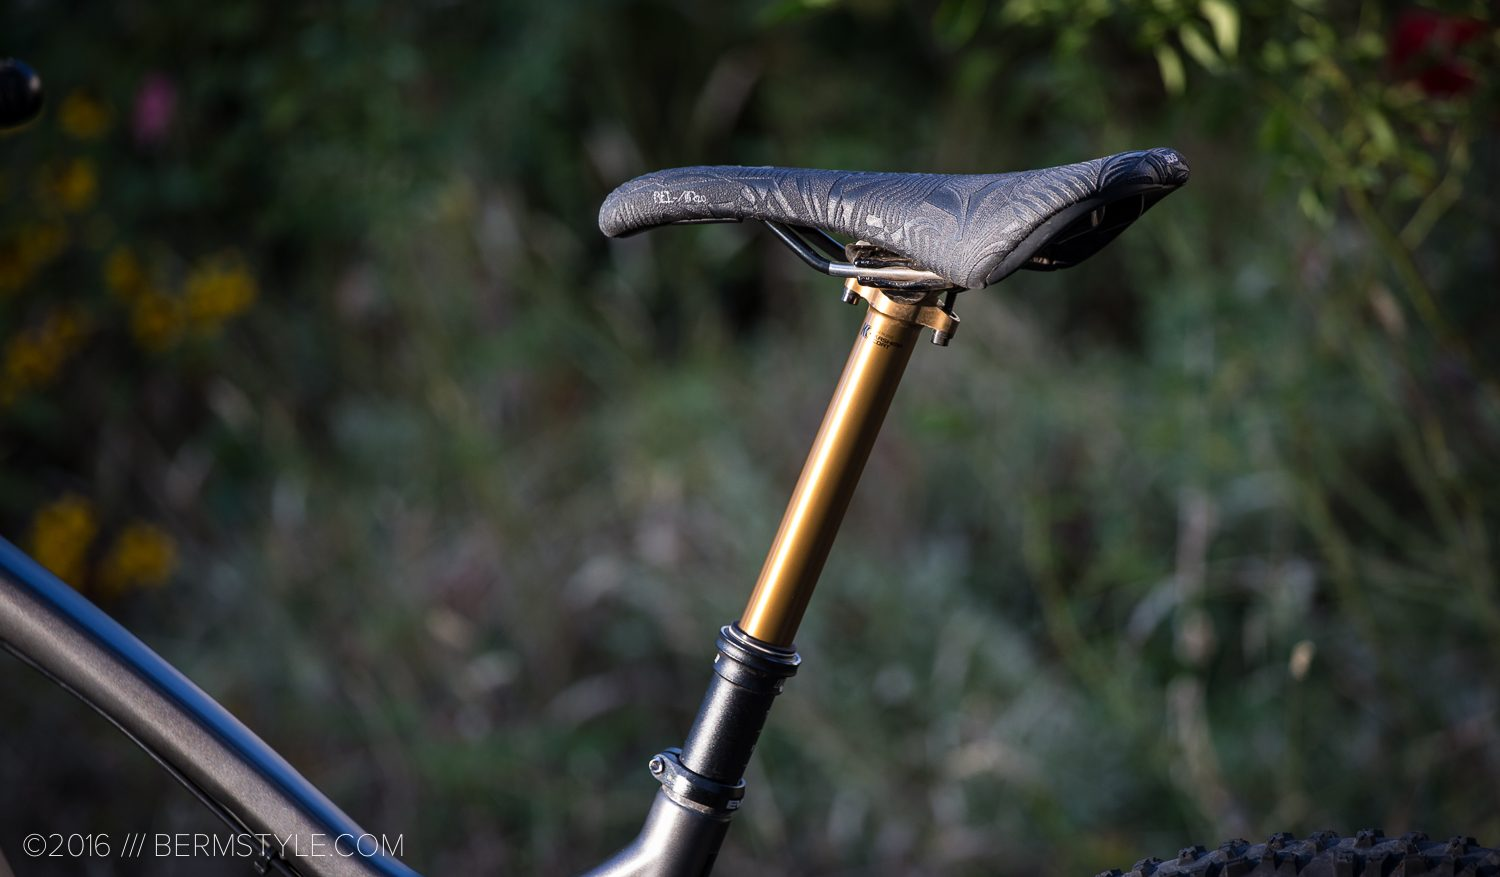 Fox's new Transfer Adjustable Height Seatpost paired with the Bel-Air Saddle from SDG Components.